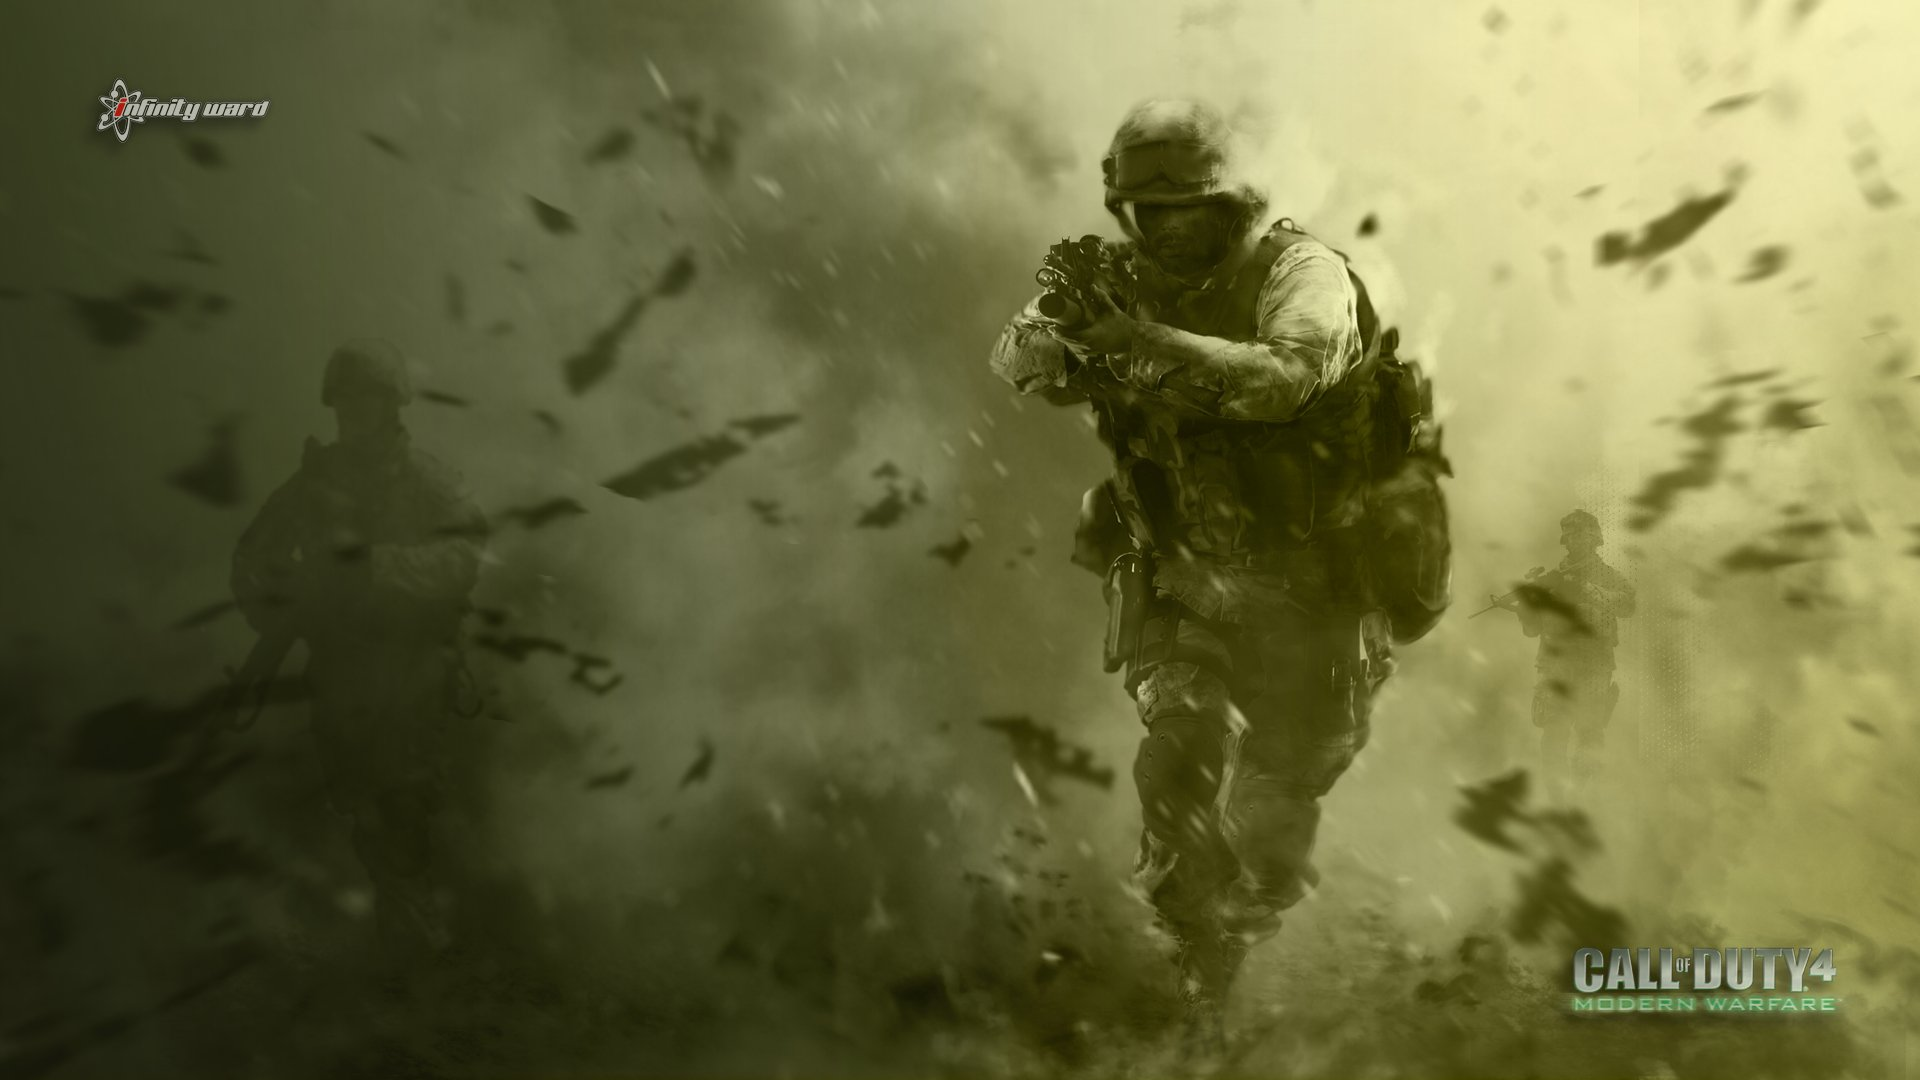 Call Of Duty 4 Wallpapers - Wallpaper Cave